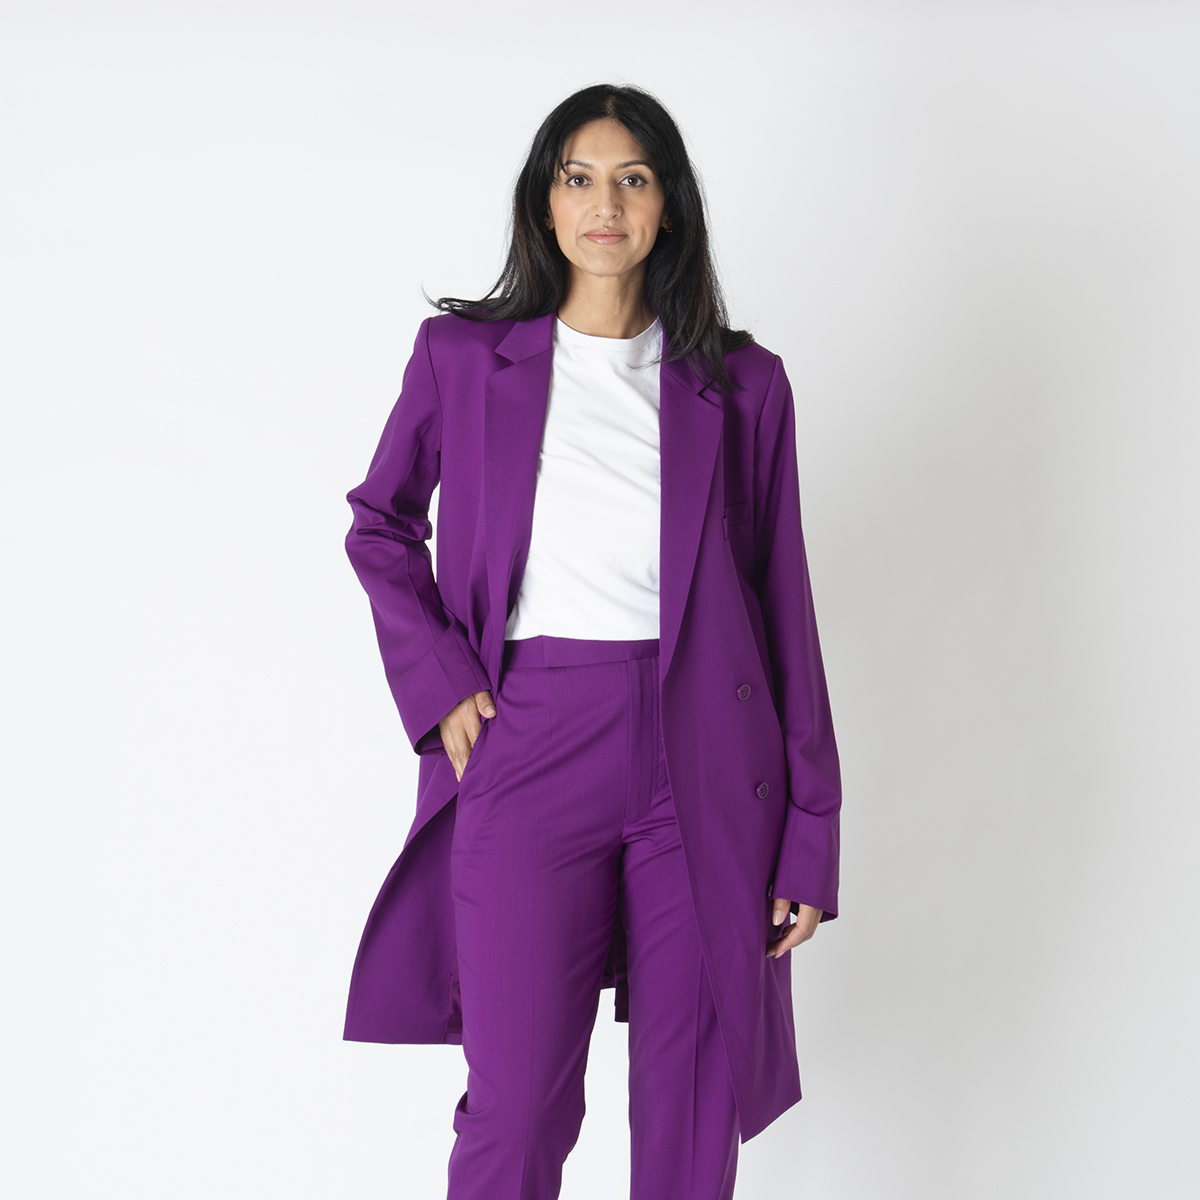 Helmut Lang Wool Oversized Blazer – New With Tags